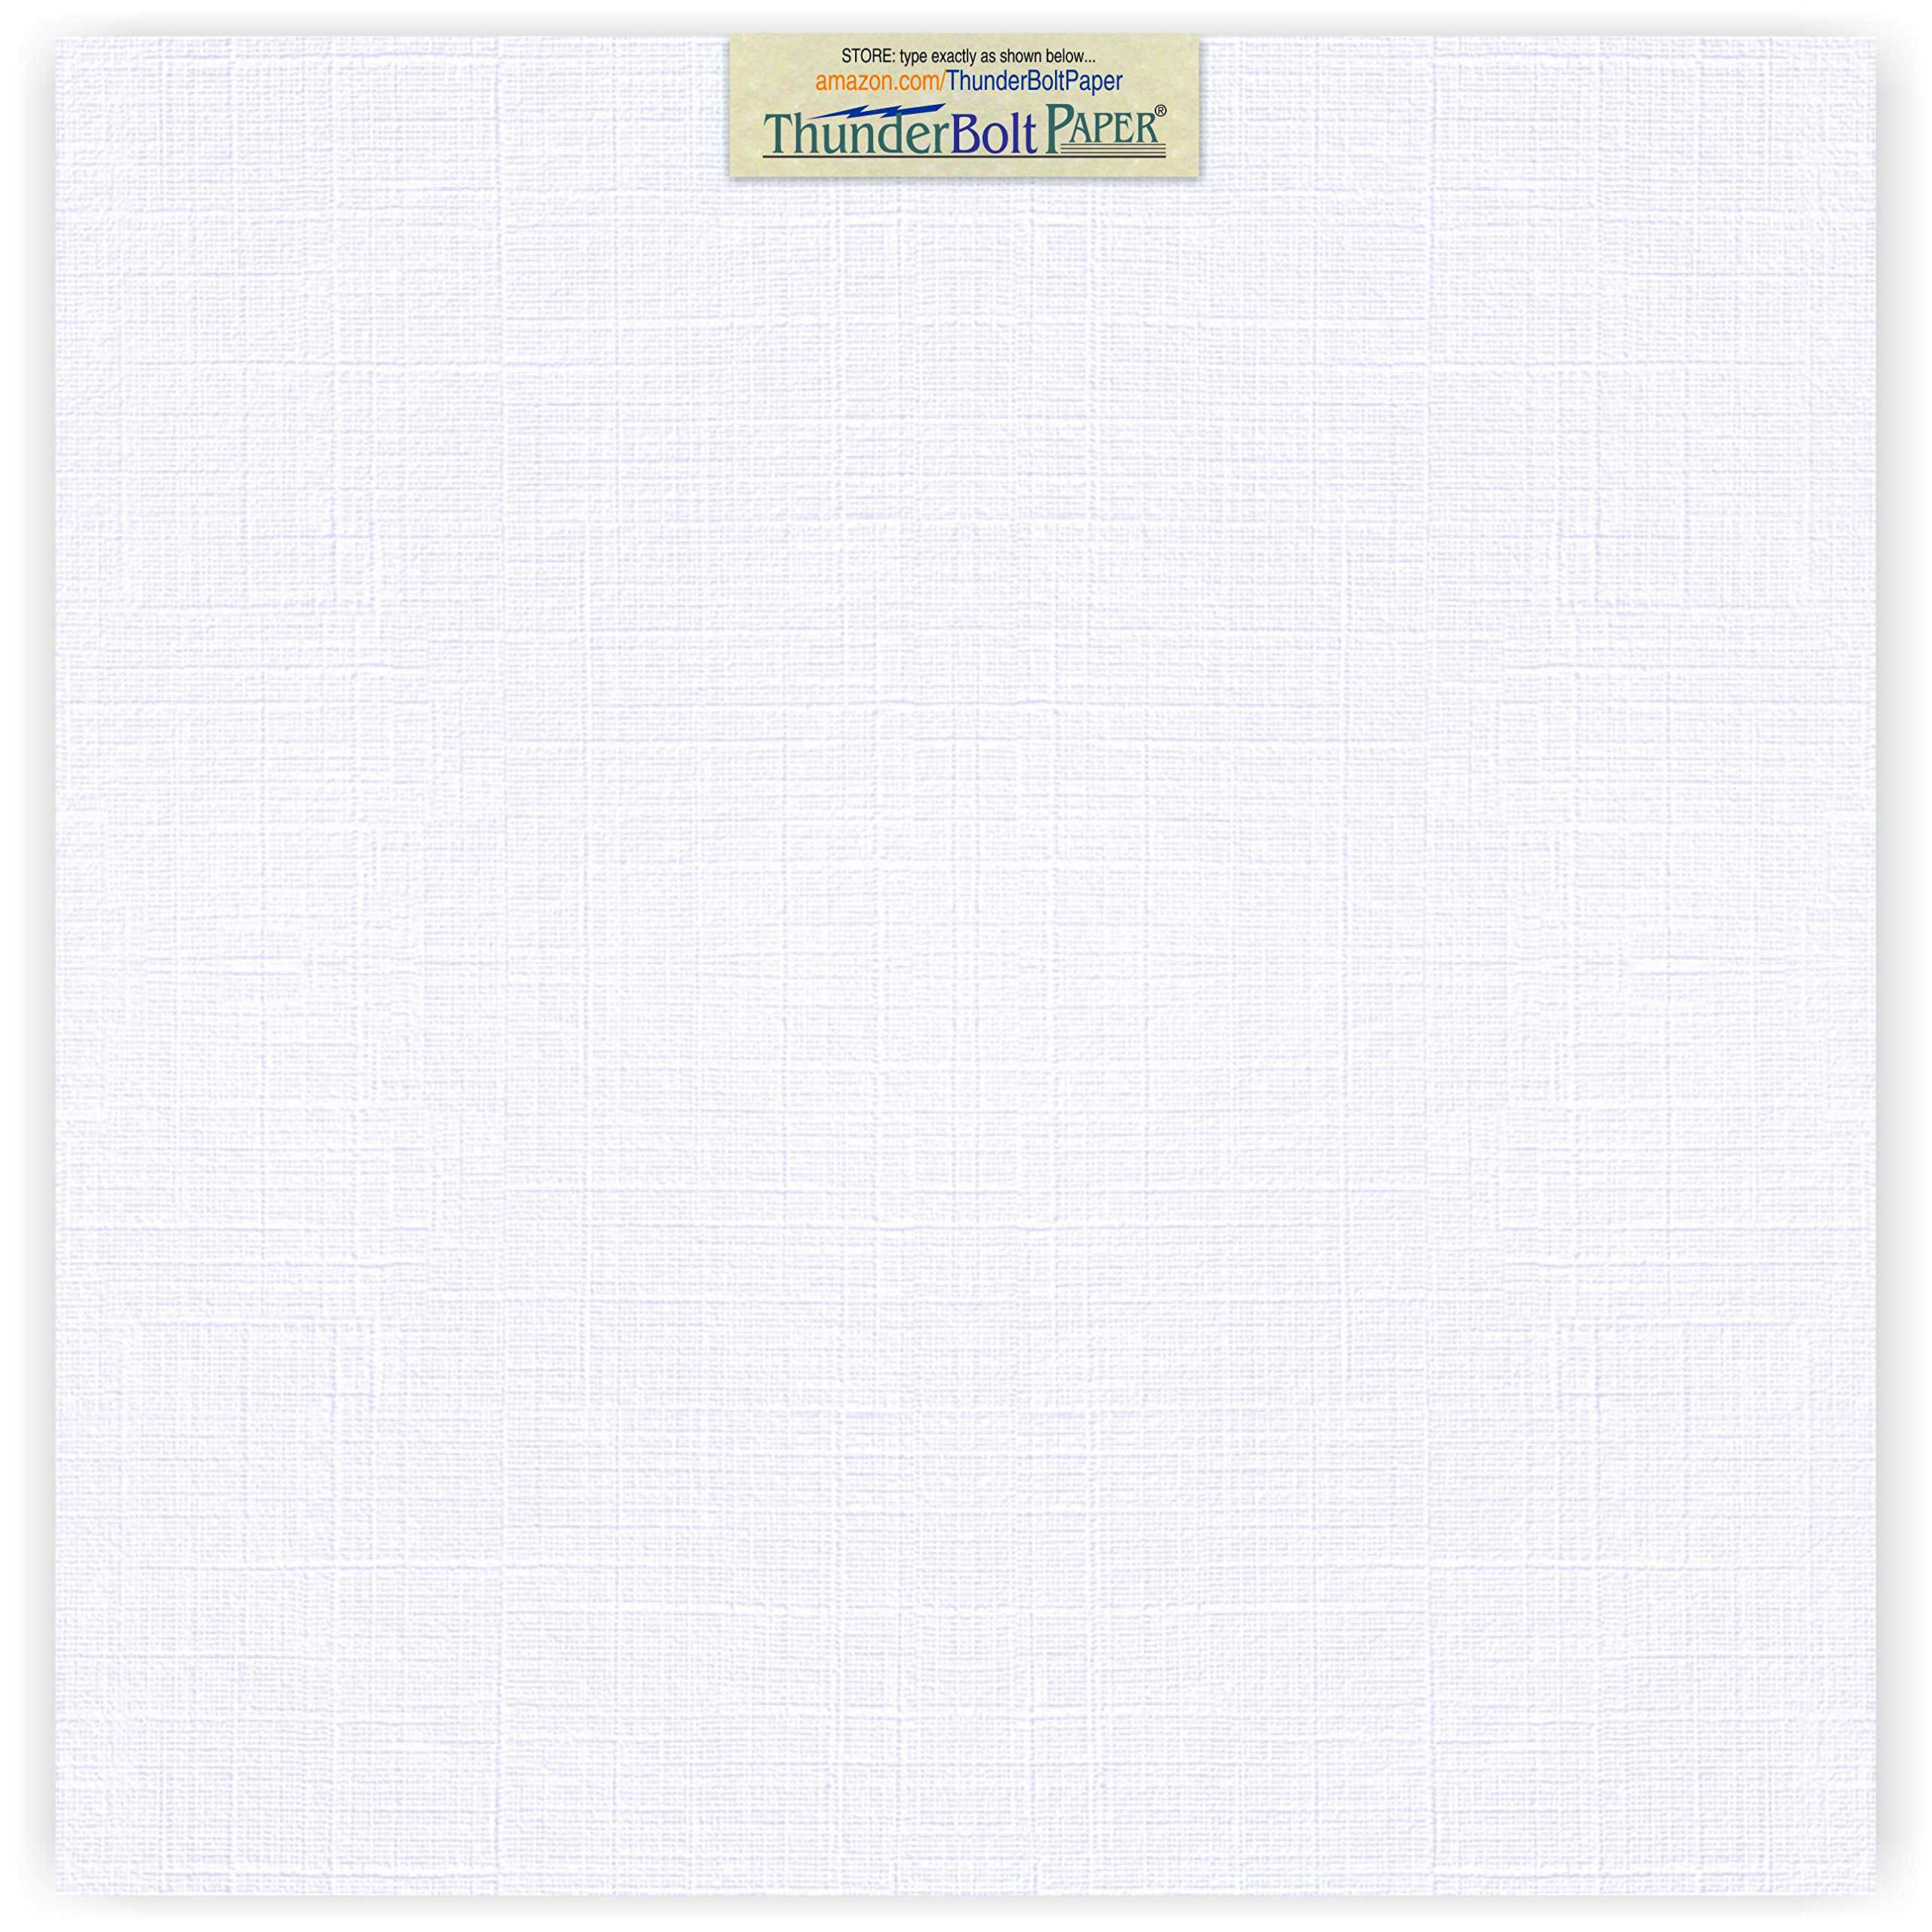 50 Bright White Linen 80# Cover Paper Sheets - 12X12 Inches Square Scrapbook Album Size - 80 lb/Pound Card Weight - Fine Linen Textured Finish Cardstock by ThunderBolt Paper